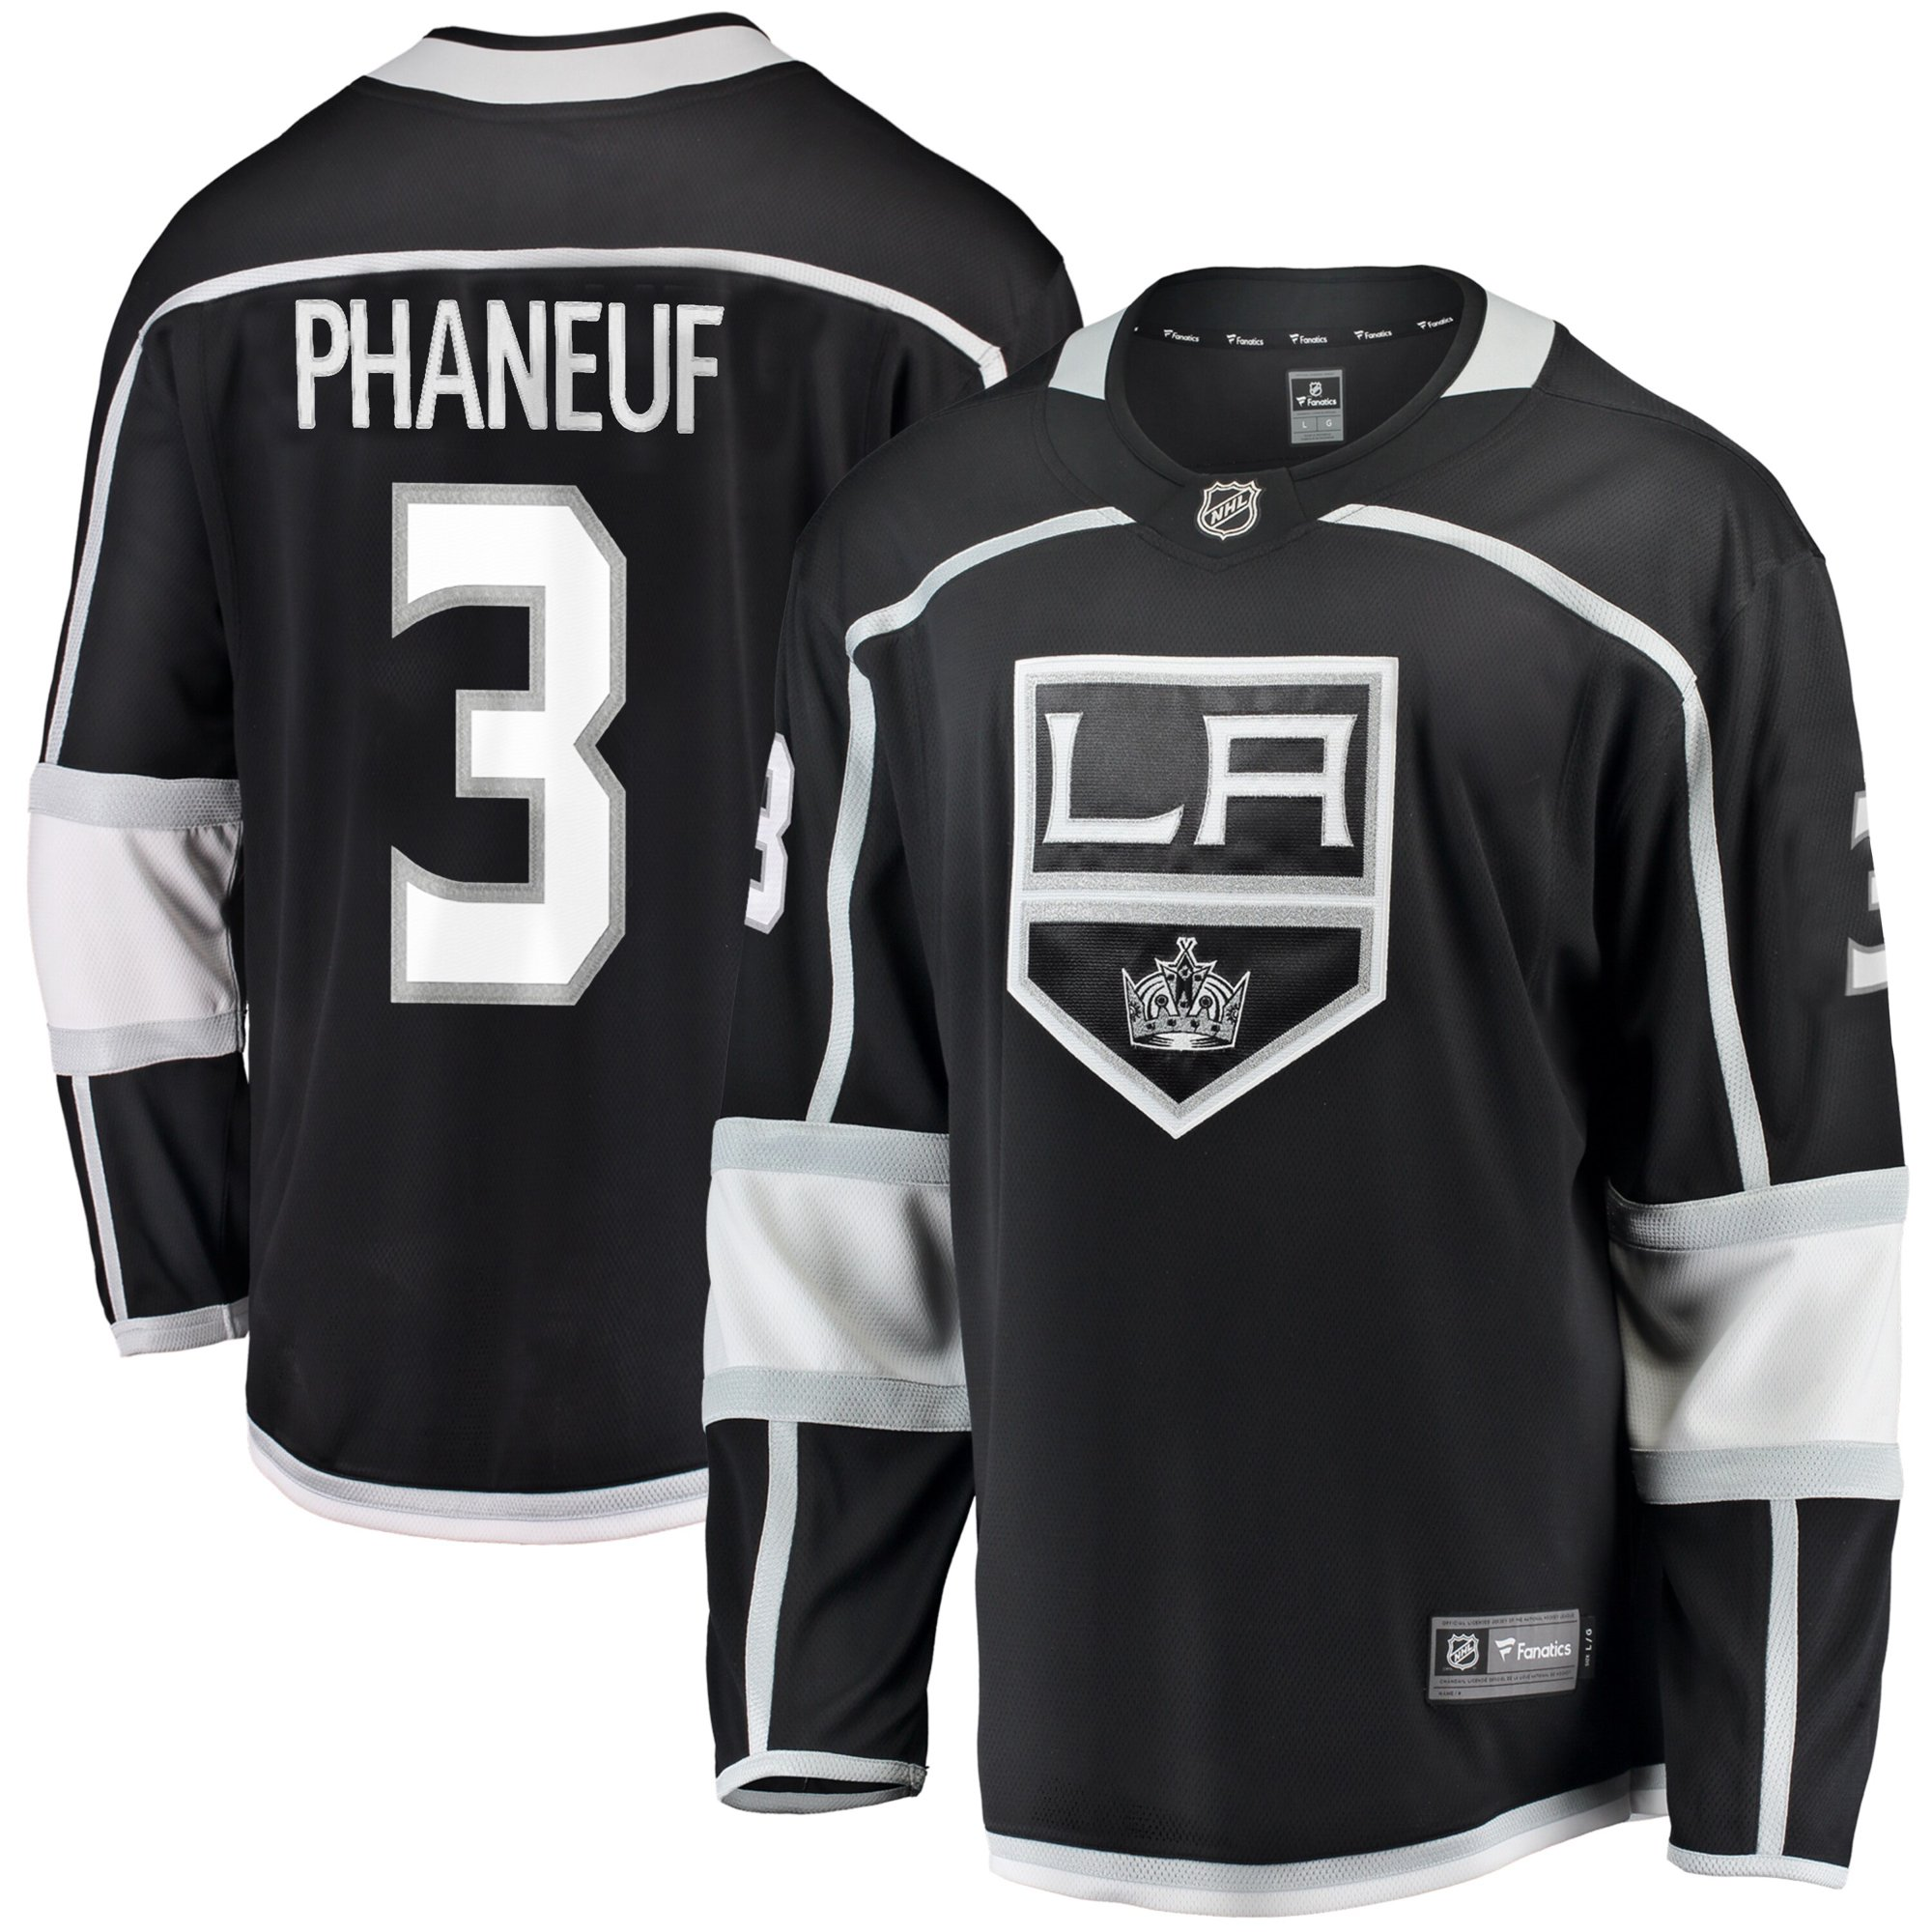 low priced 4a6e9 71a23 Dion Phaneuf Los Angeles Kings NHL Fanatics Breakaway Home Jersey